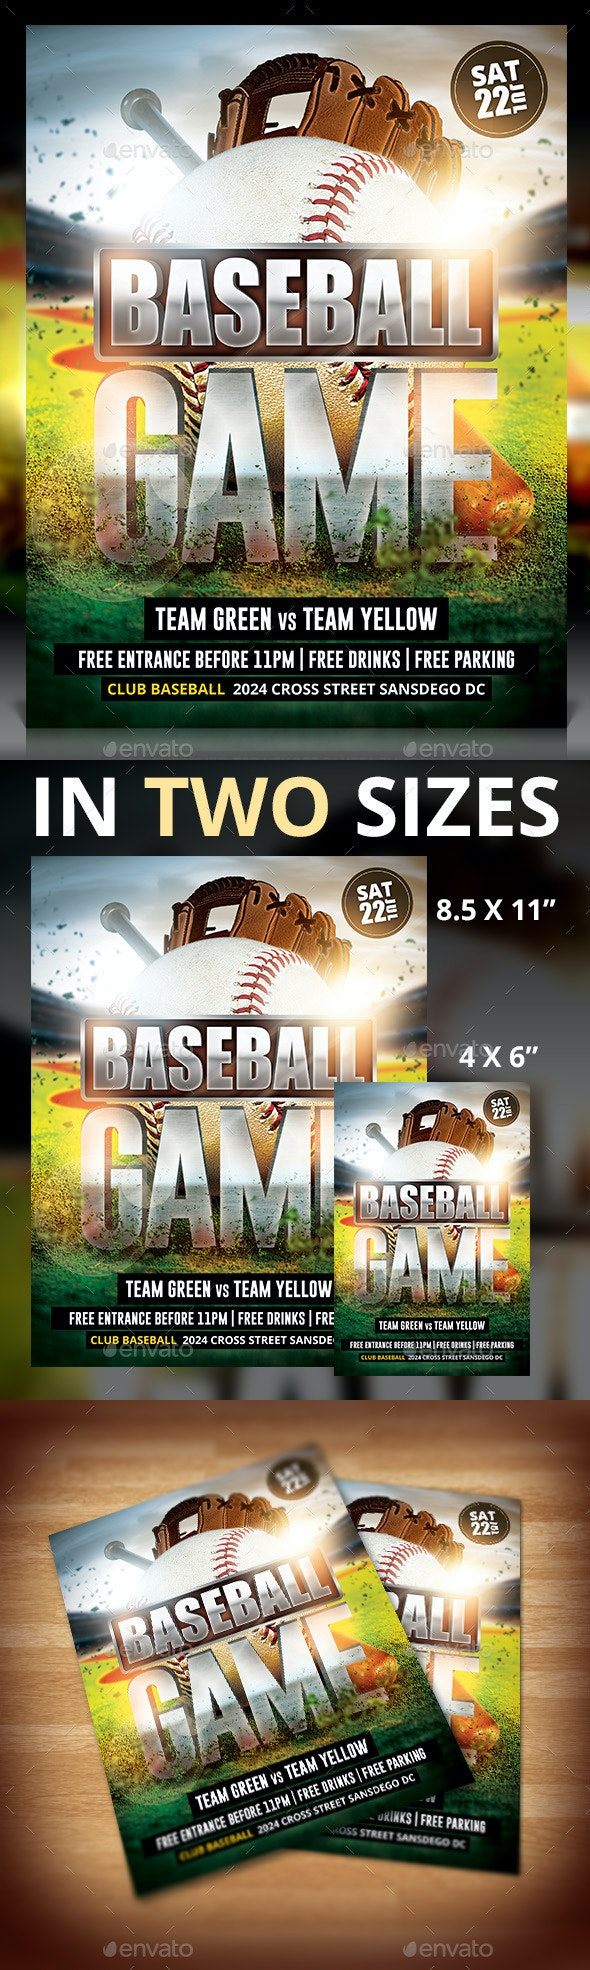 Baseball Game Flyer - Sports Events